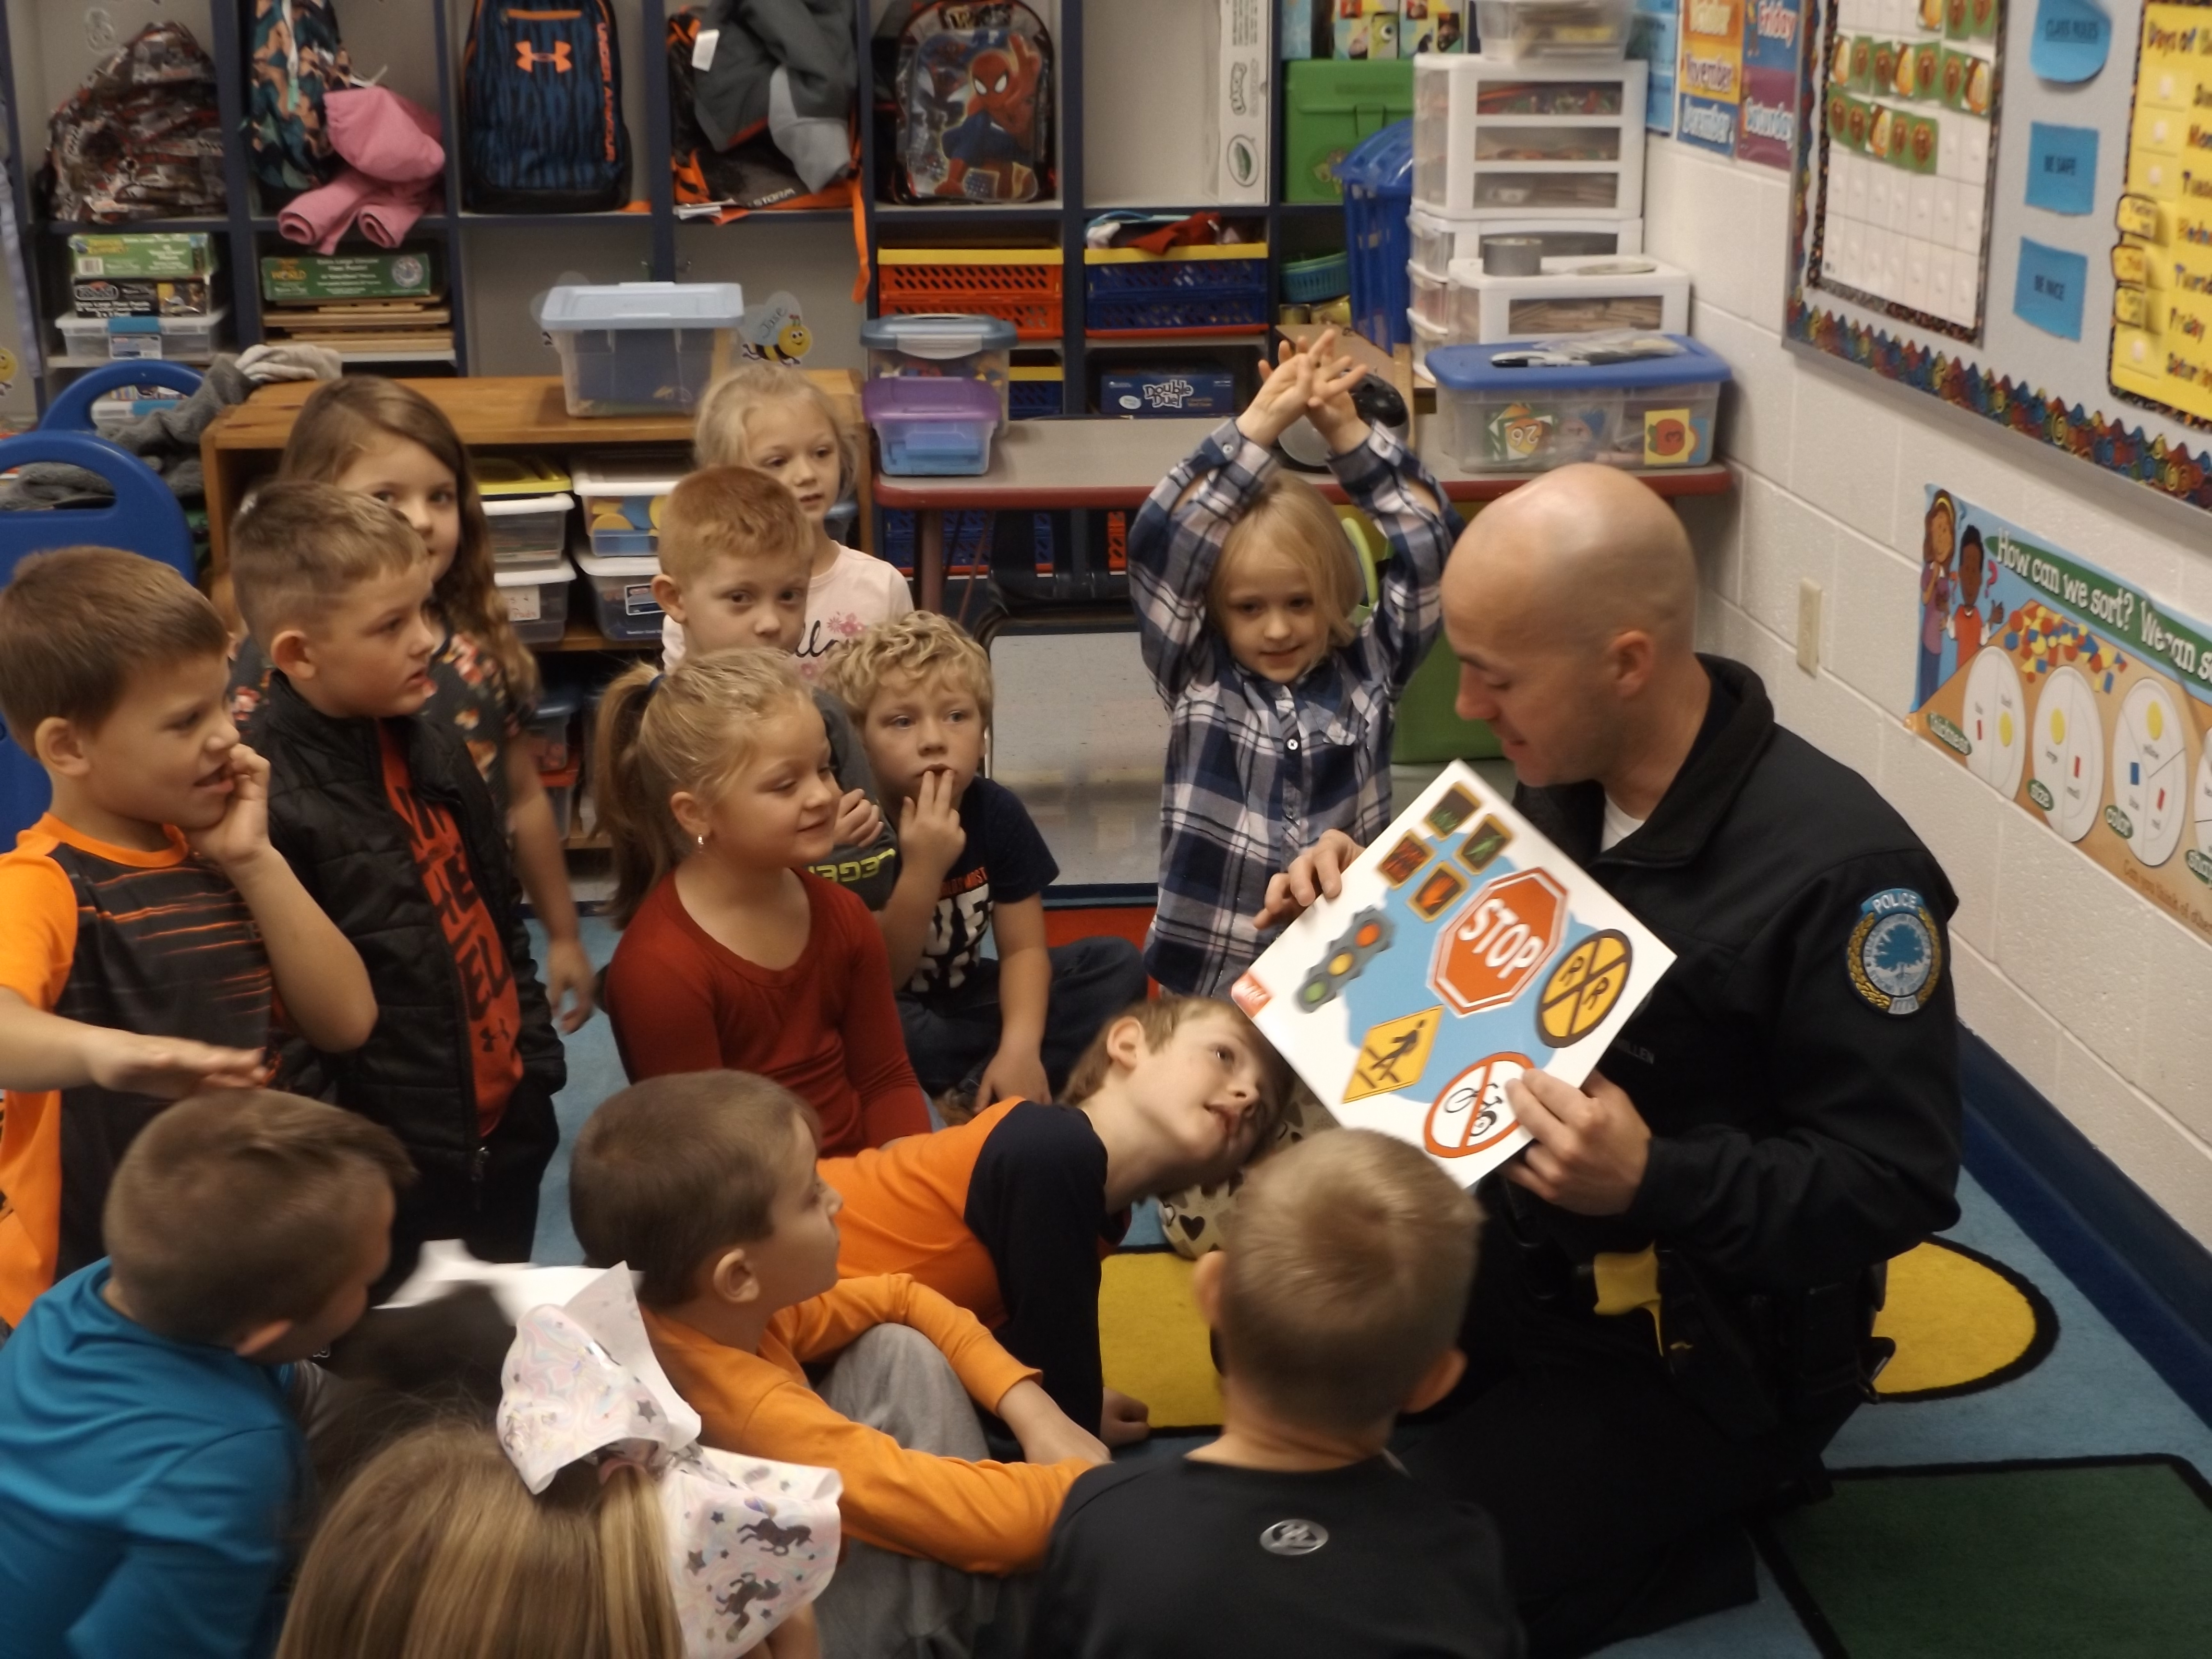 On Thursday, November 15th, officers with the DARE Program visited the Clinton County Early Childhood Center to talk to the students about making good choices.